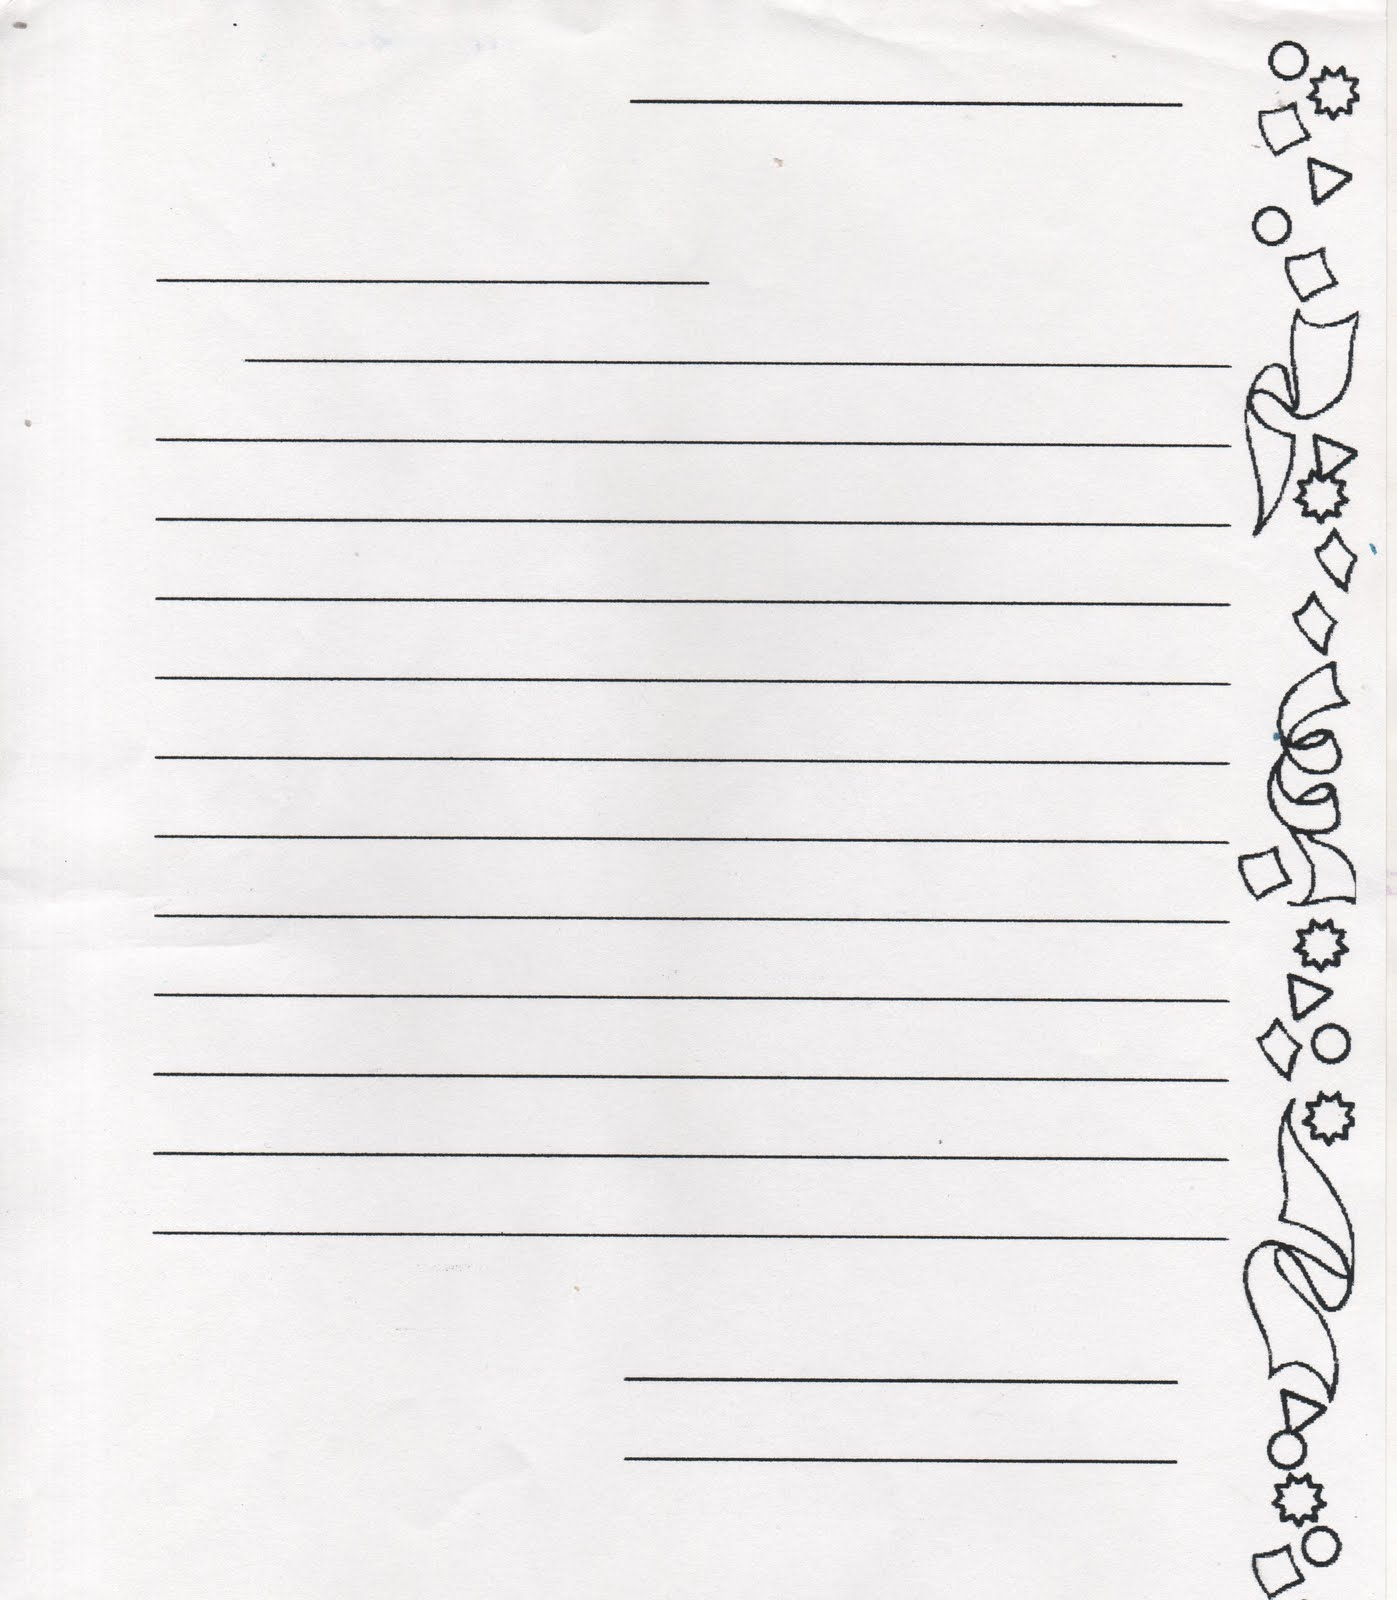 Friendly Letter Format Elementary School.  ELEMENTARY SCHOOL ENRICHMENT ACTIVITIES PEN PAL IDEAS